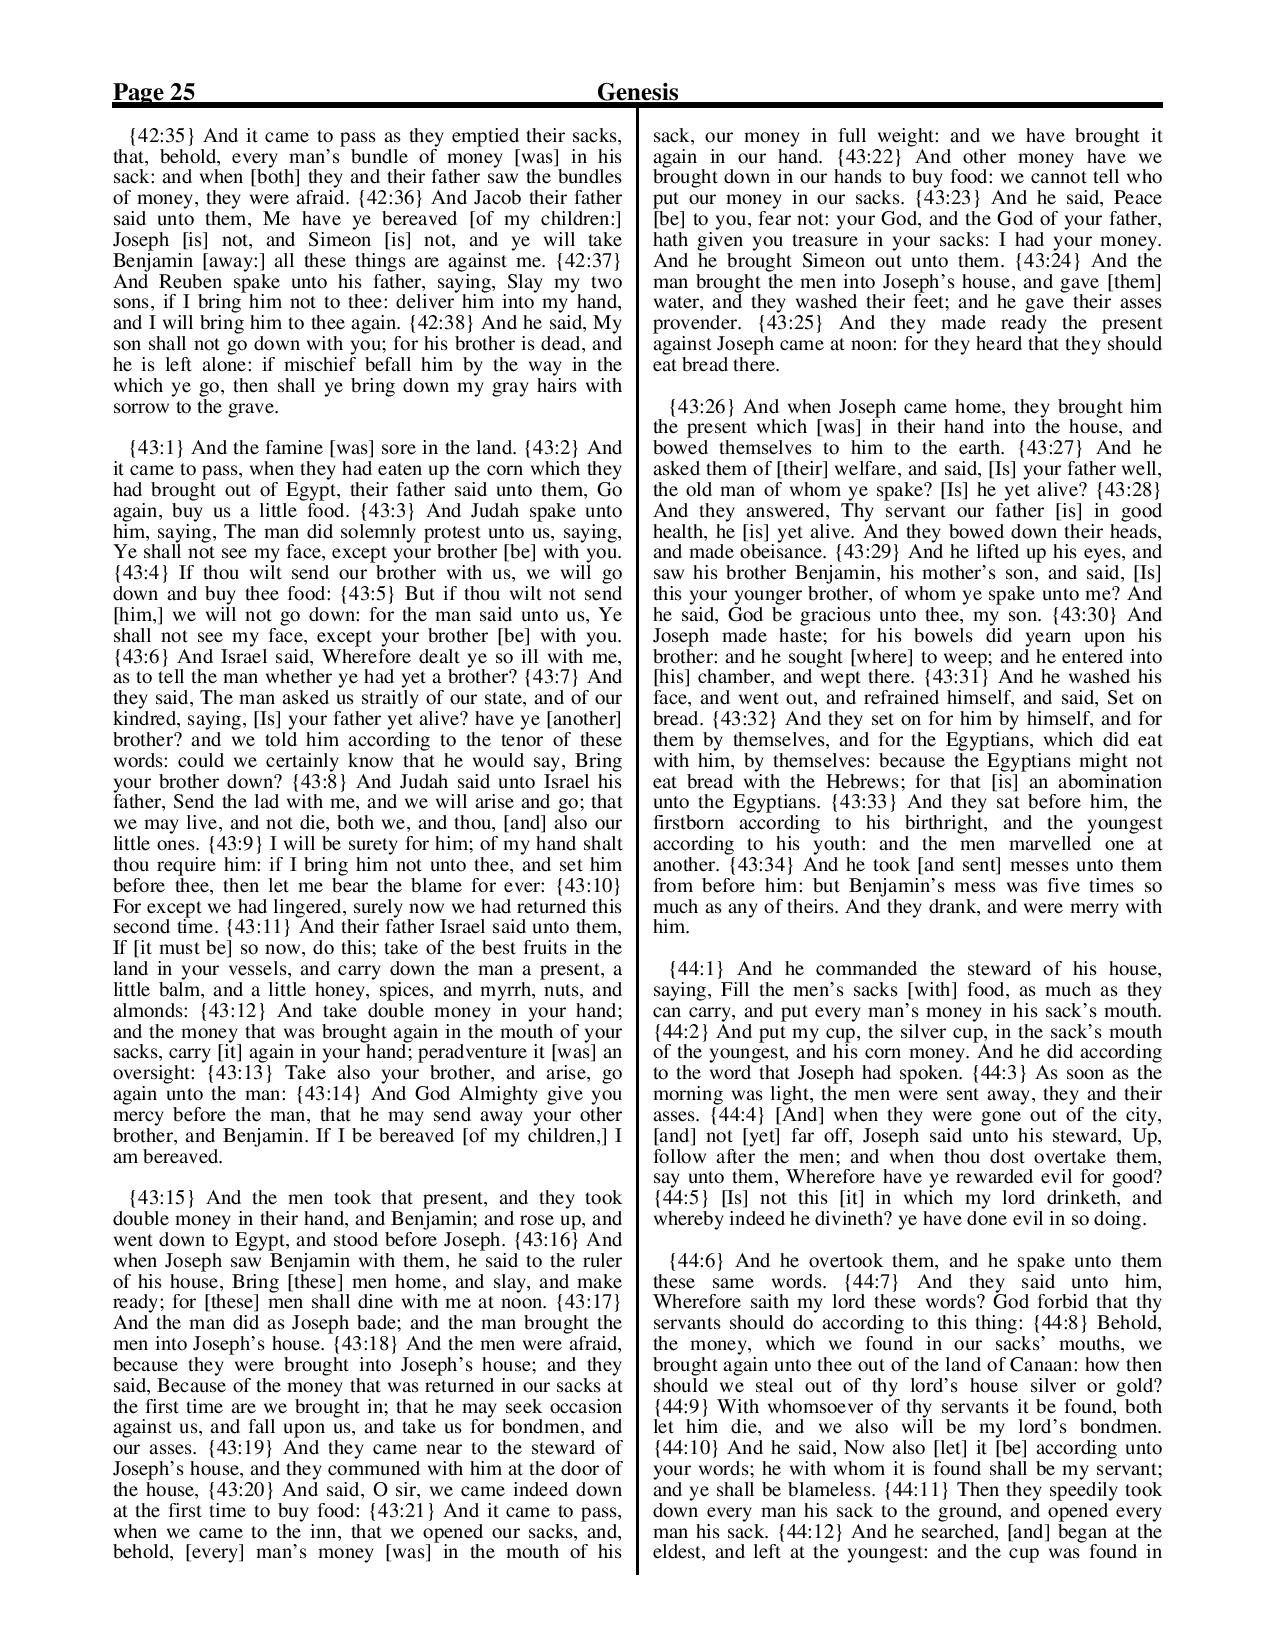 King-James-Bible-KJV-Bible-PDF-page-046